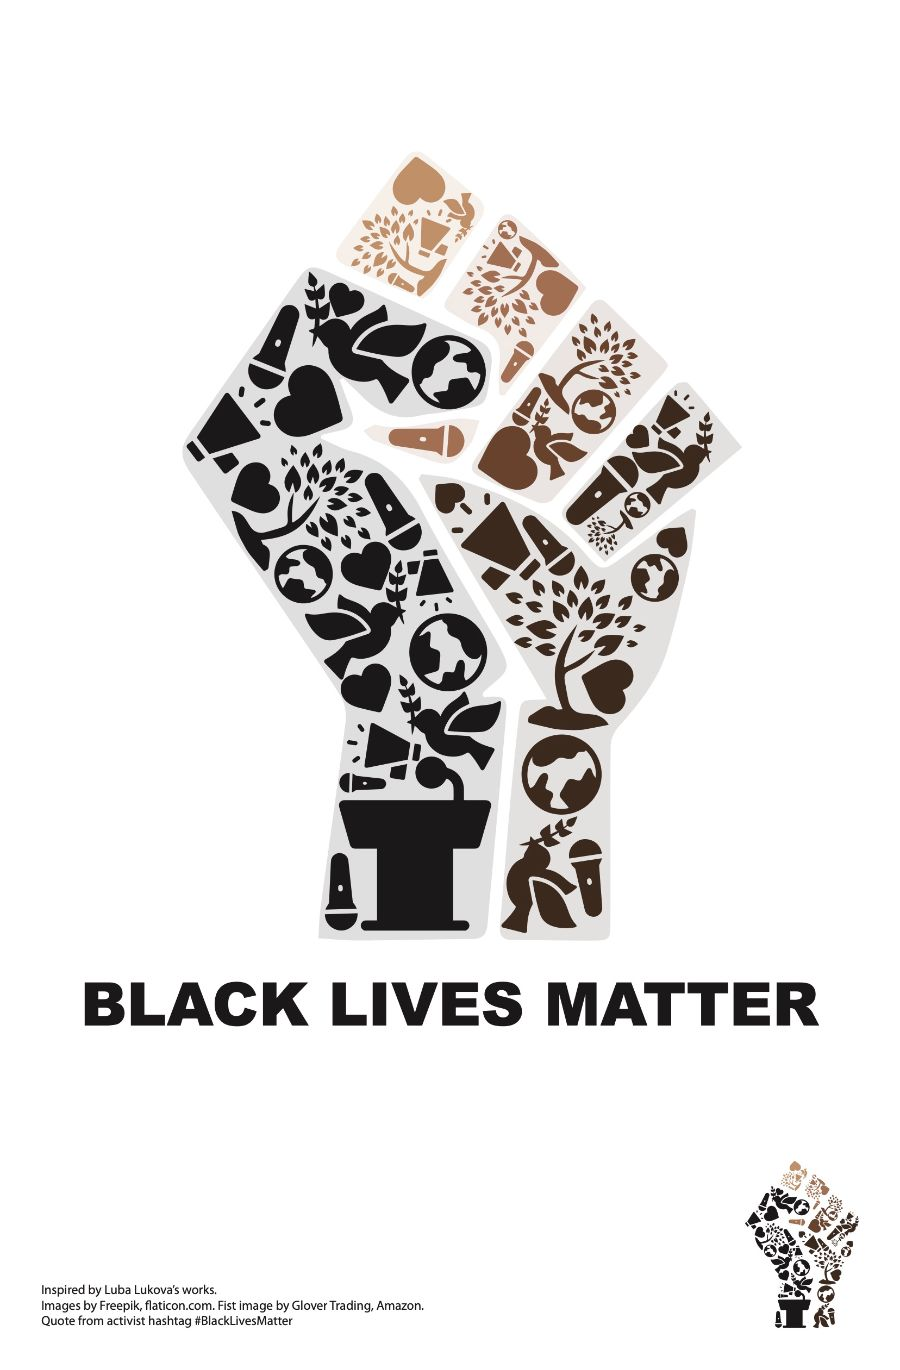 "Poster depicts a clenched fist that is made up of different icons like doves, worlds, and megaphones. Underneath the words ""Black Lives Matter"" is written."